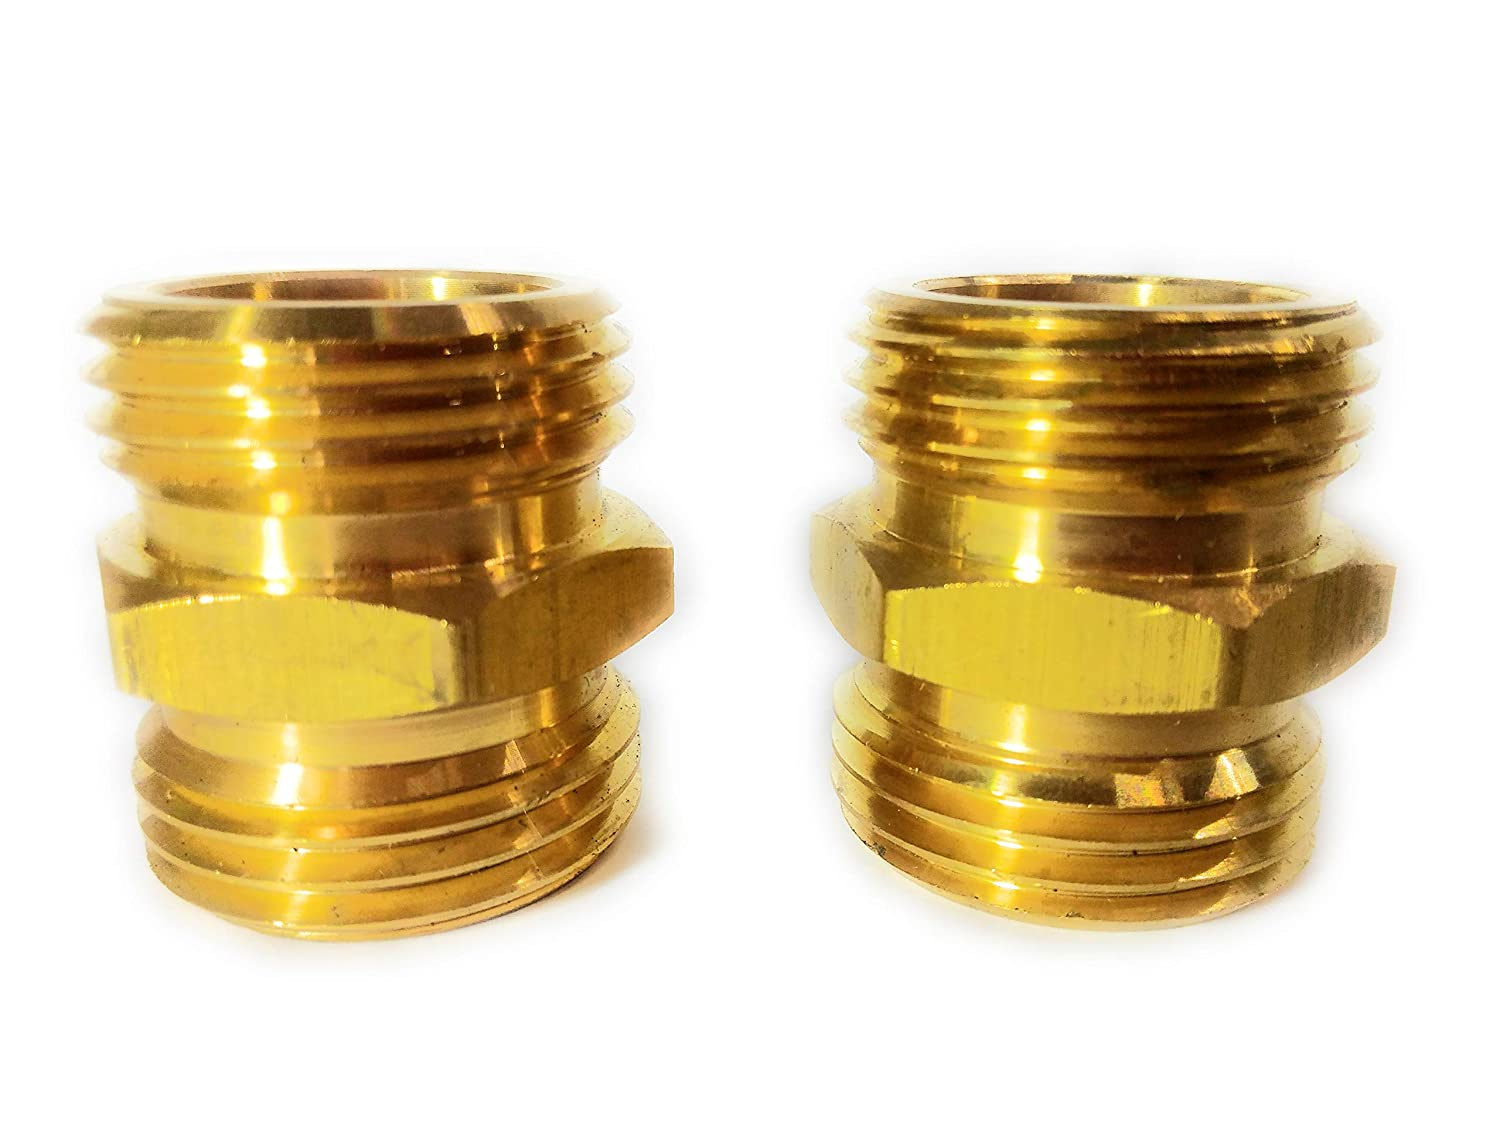 Solid Brass Garden Hose Double Male End Connect Set, Heavy Duty, Lead-Free, Leak-Free, Connect Female to Female End, Extra 10 Washers.